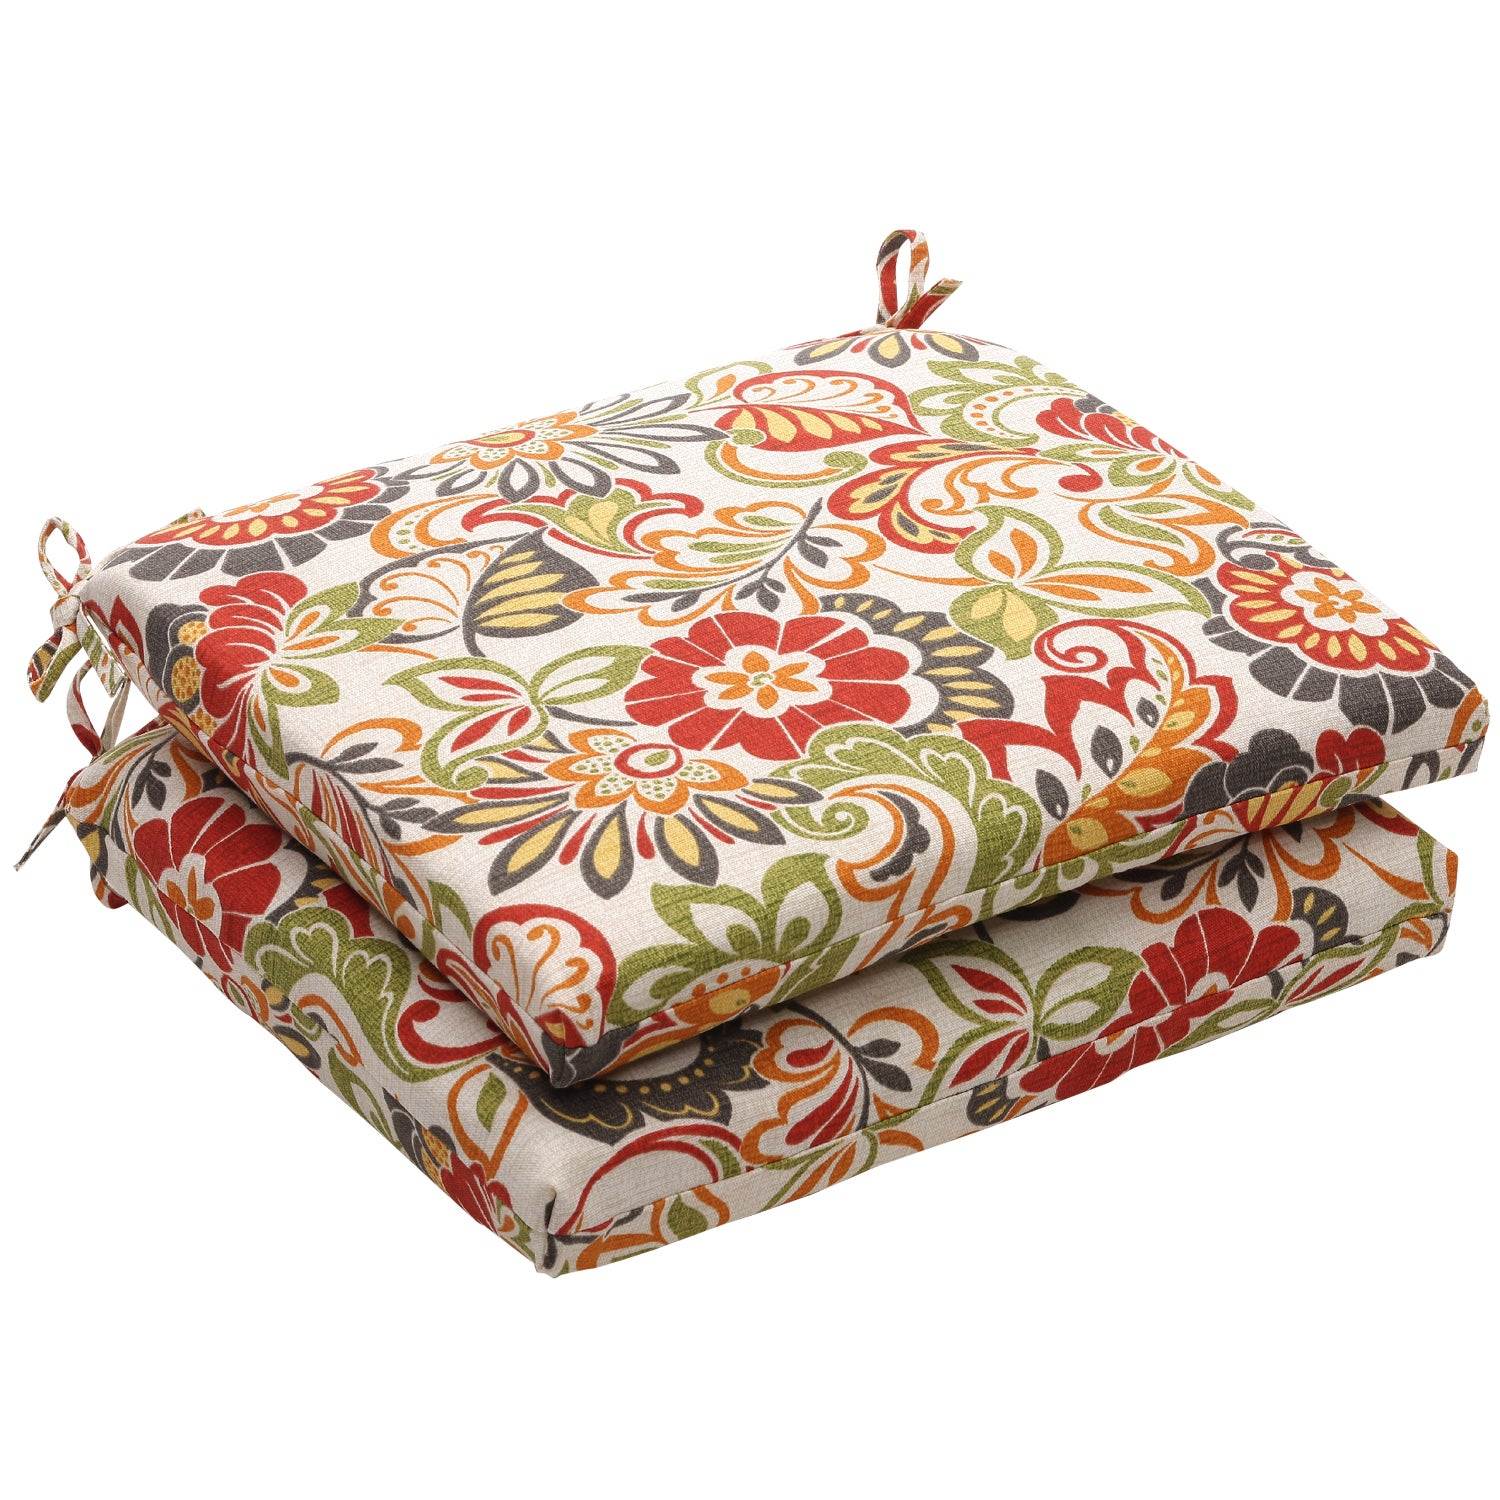 Outdoor Multicolored Floral Square Seat Cushion Set of 2 Free